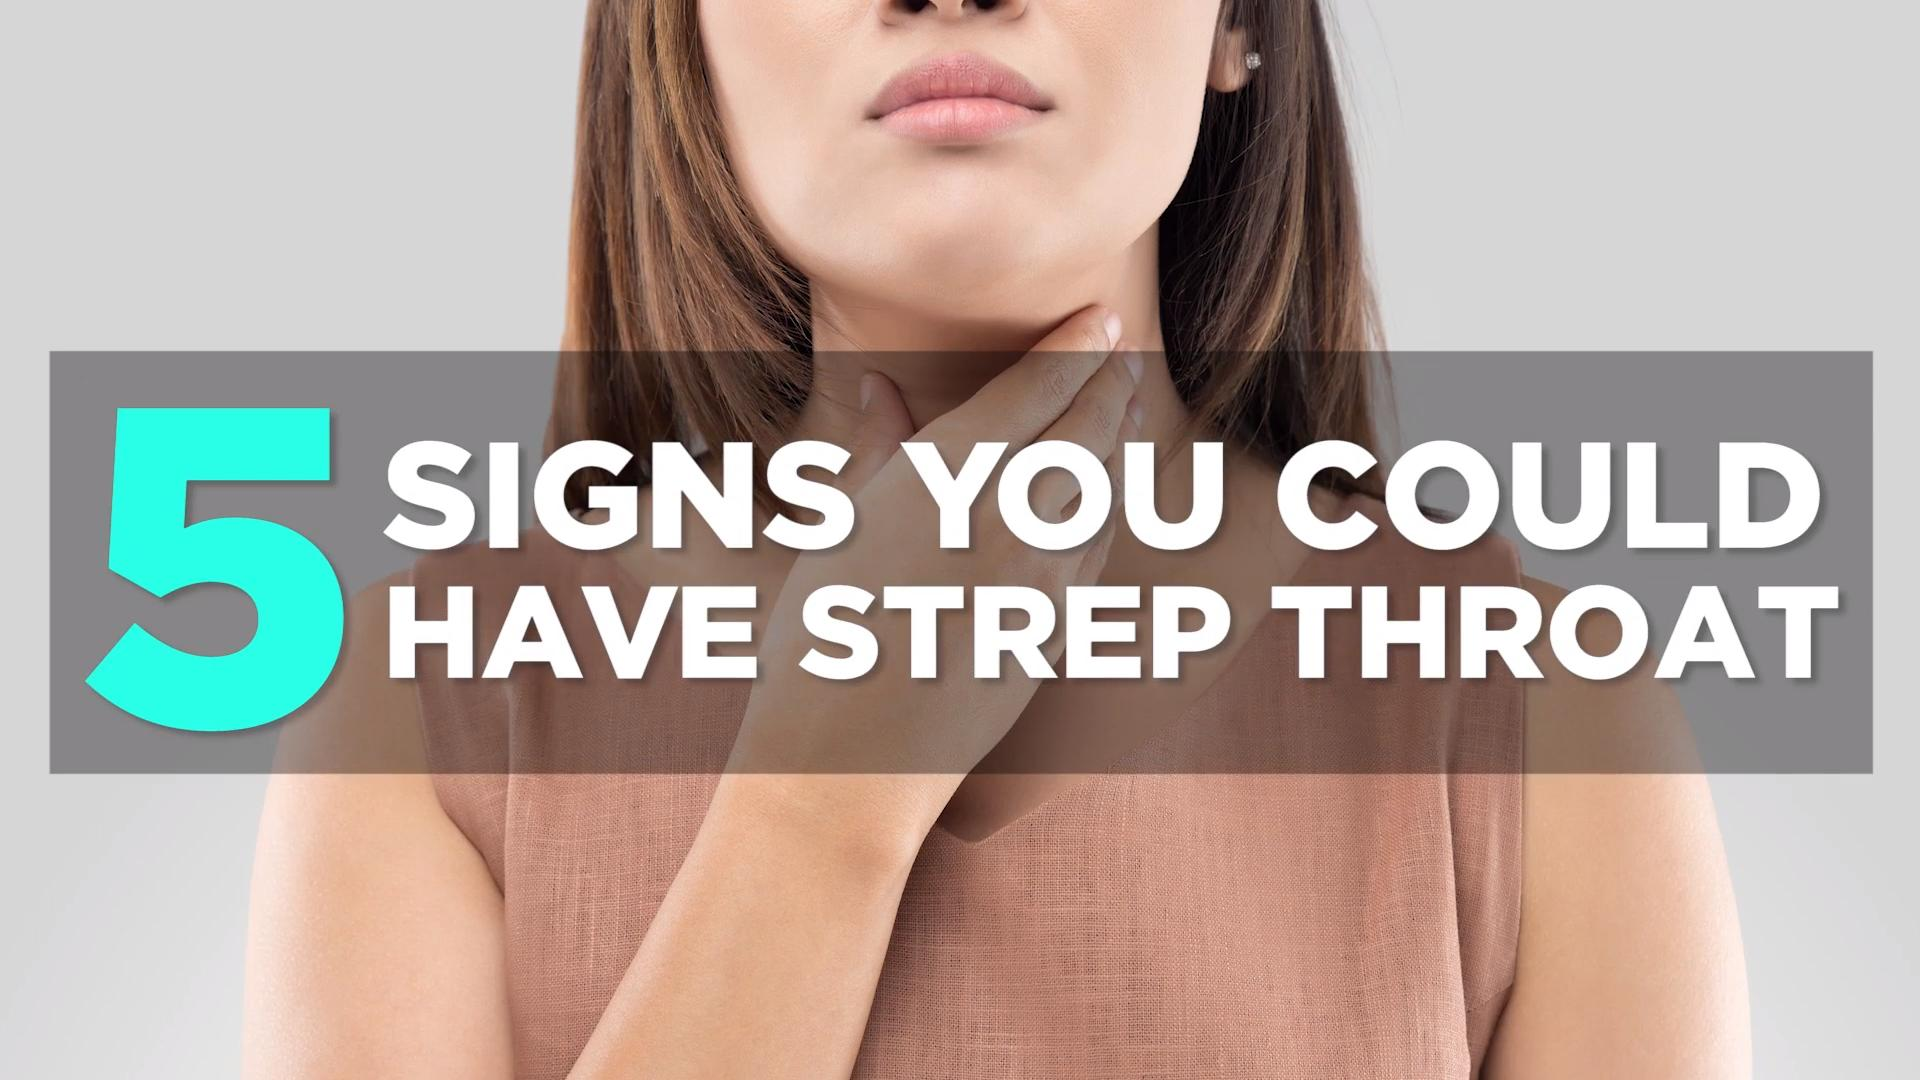 Signs And Symptoms Of Strep Throat Health